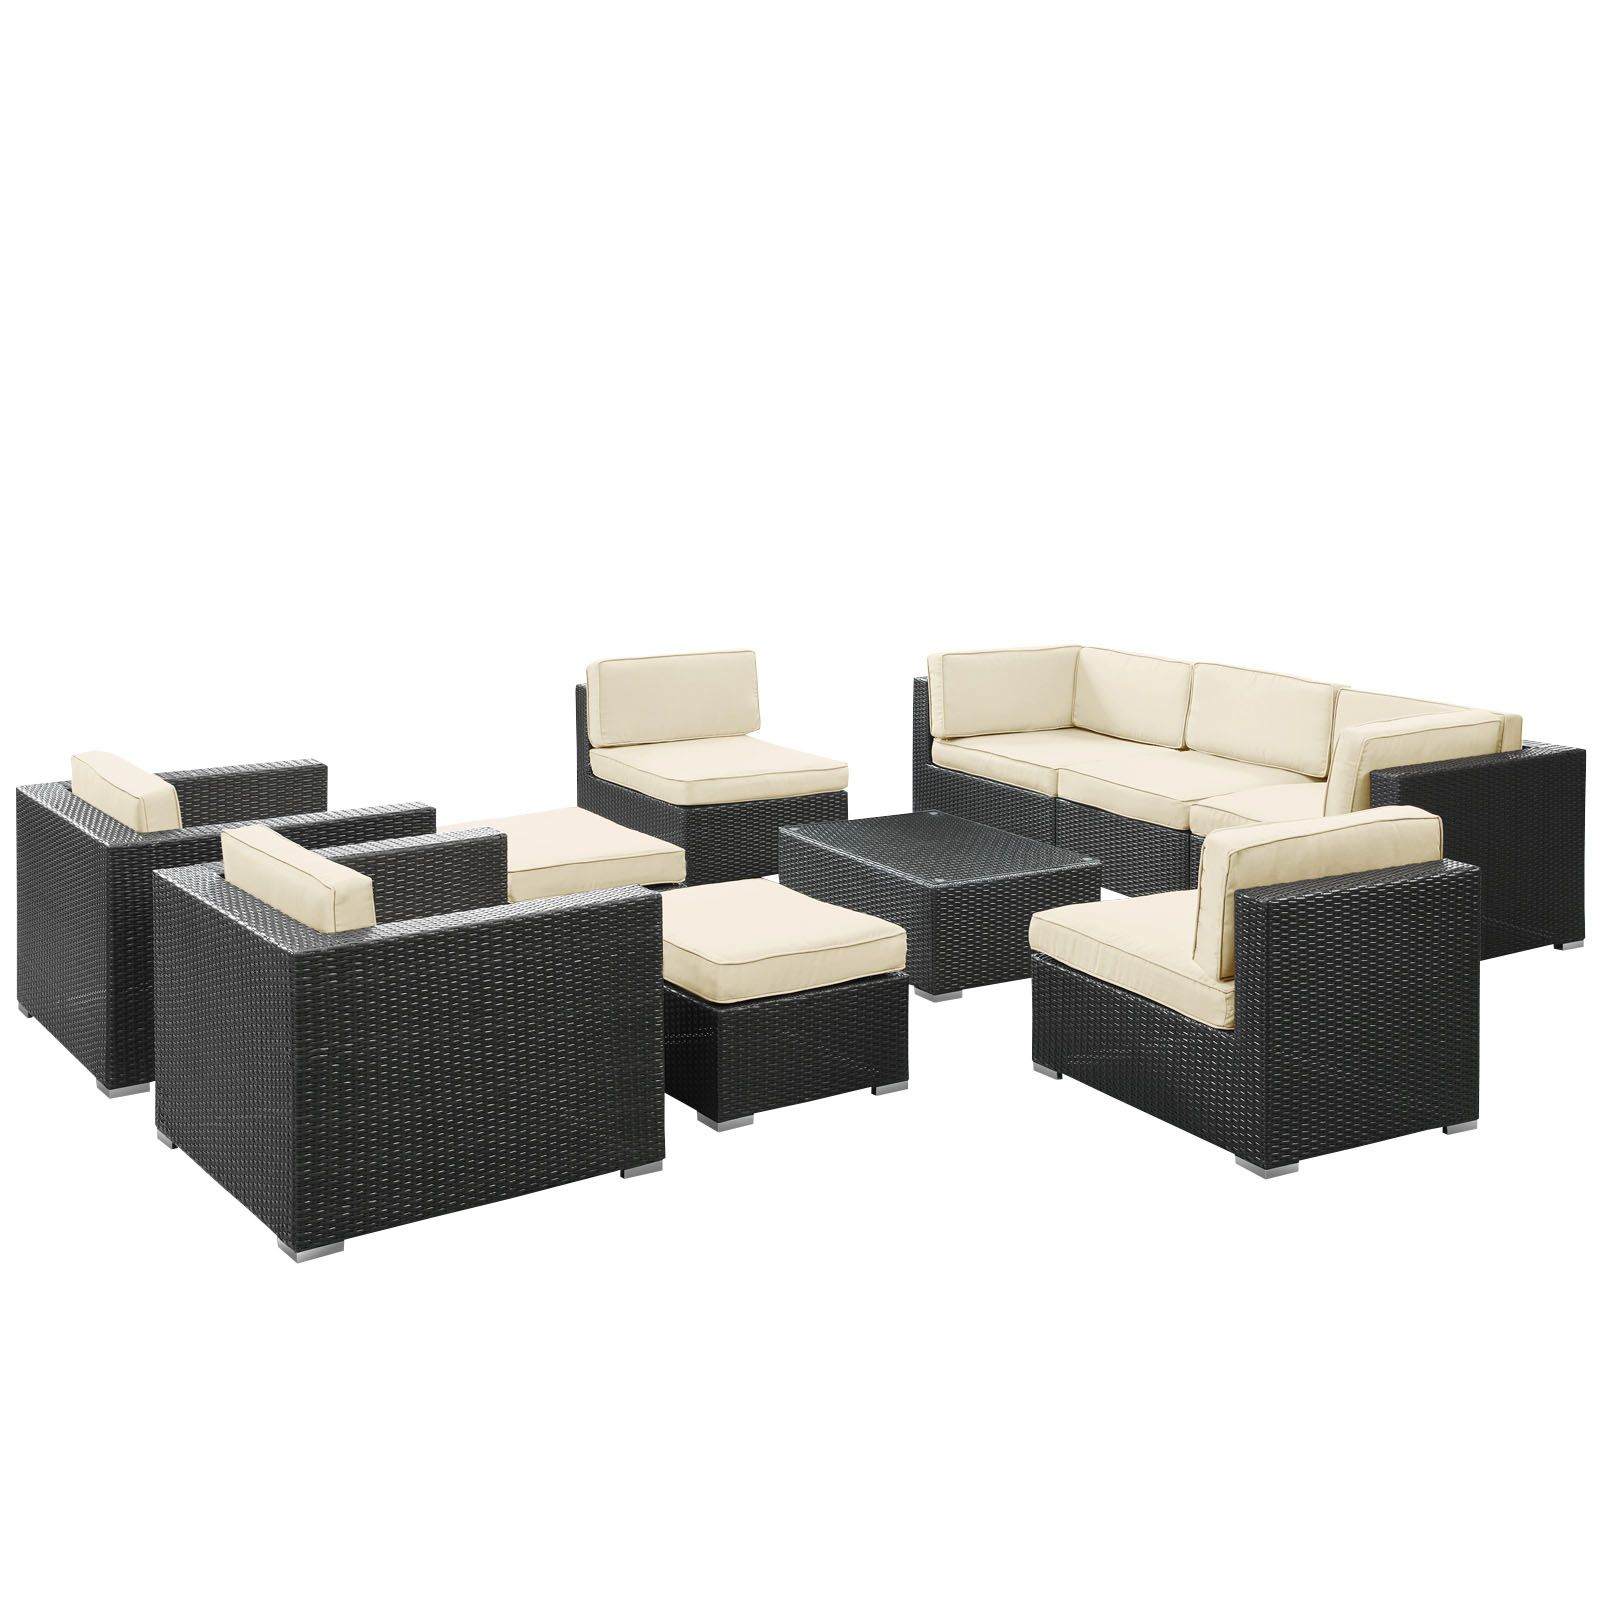 Avia 10 Piece Outdoor Patio Sectional Set In Espresso White